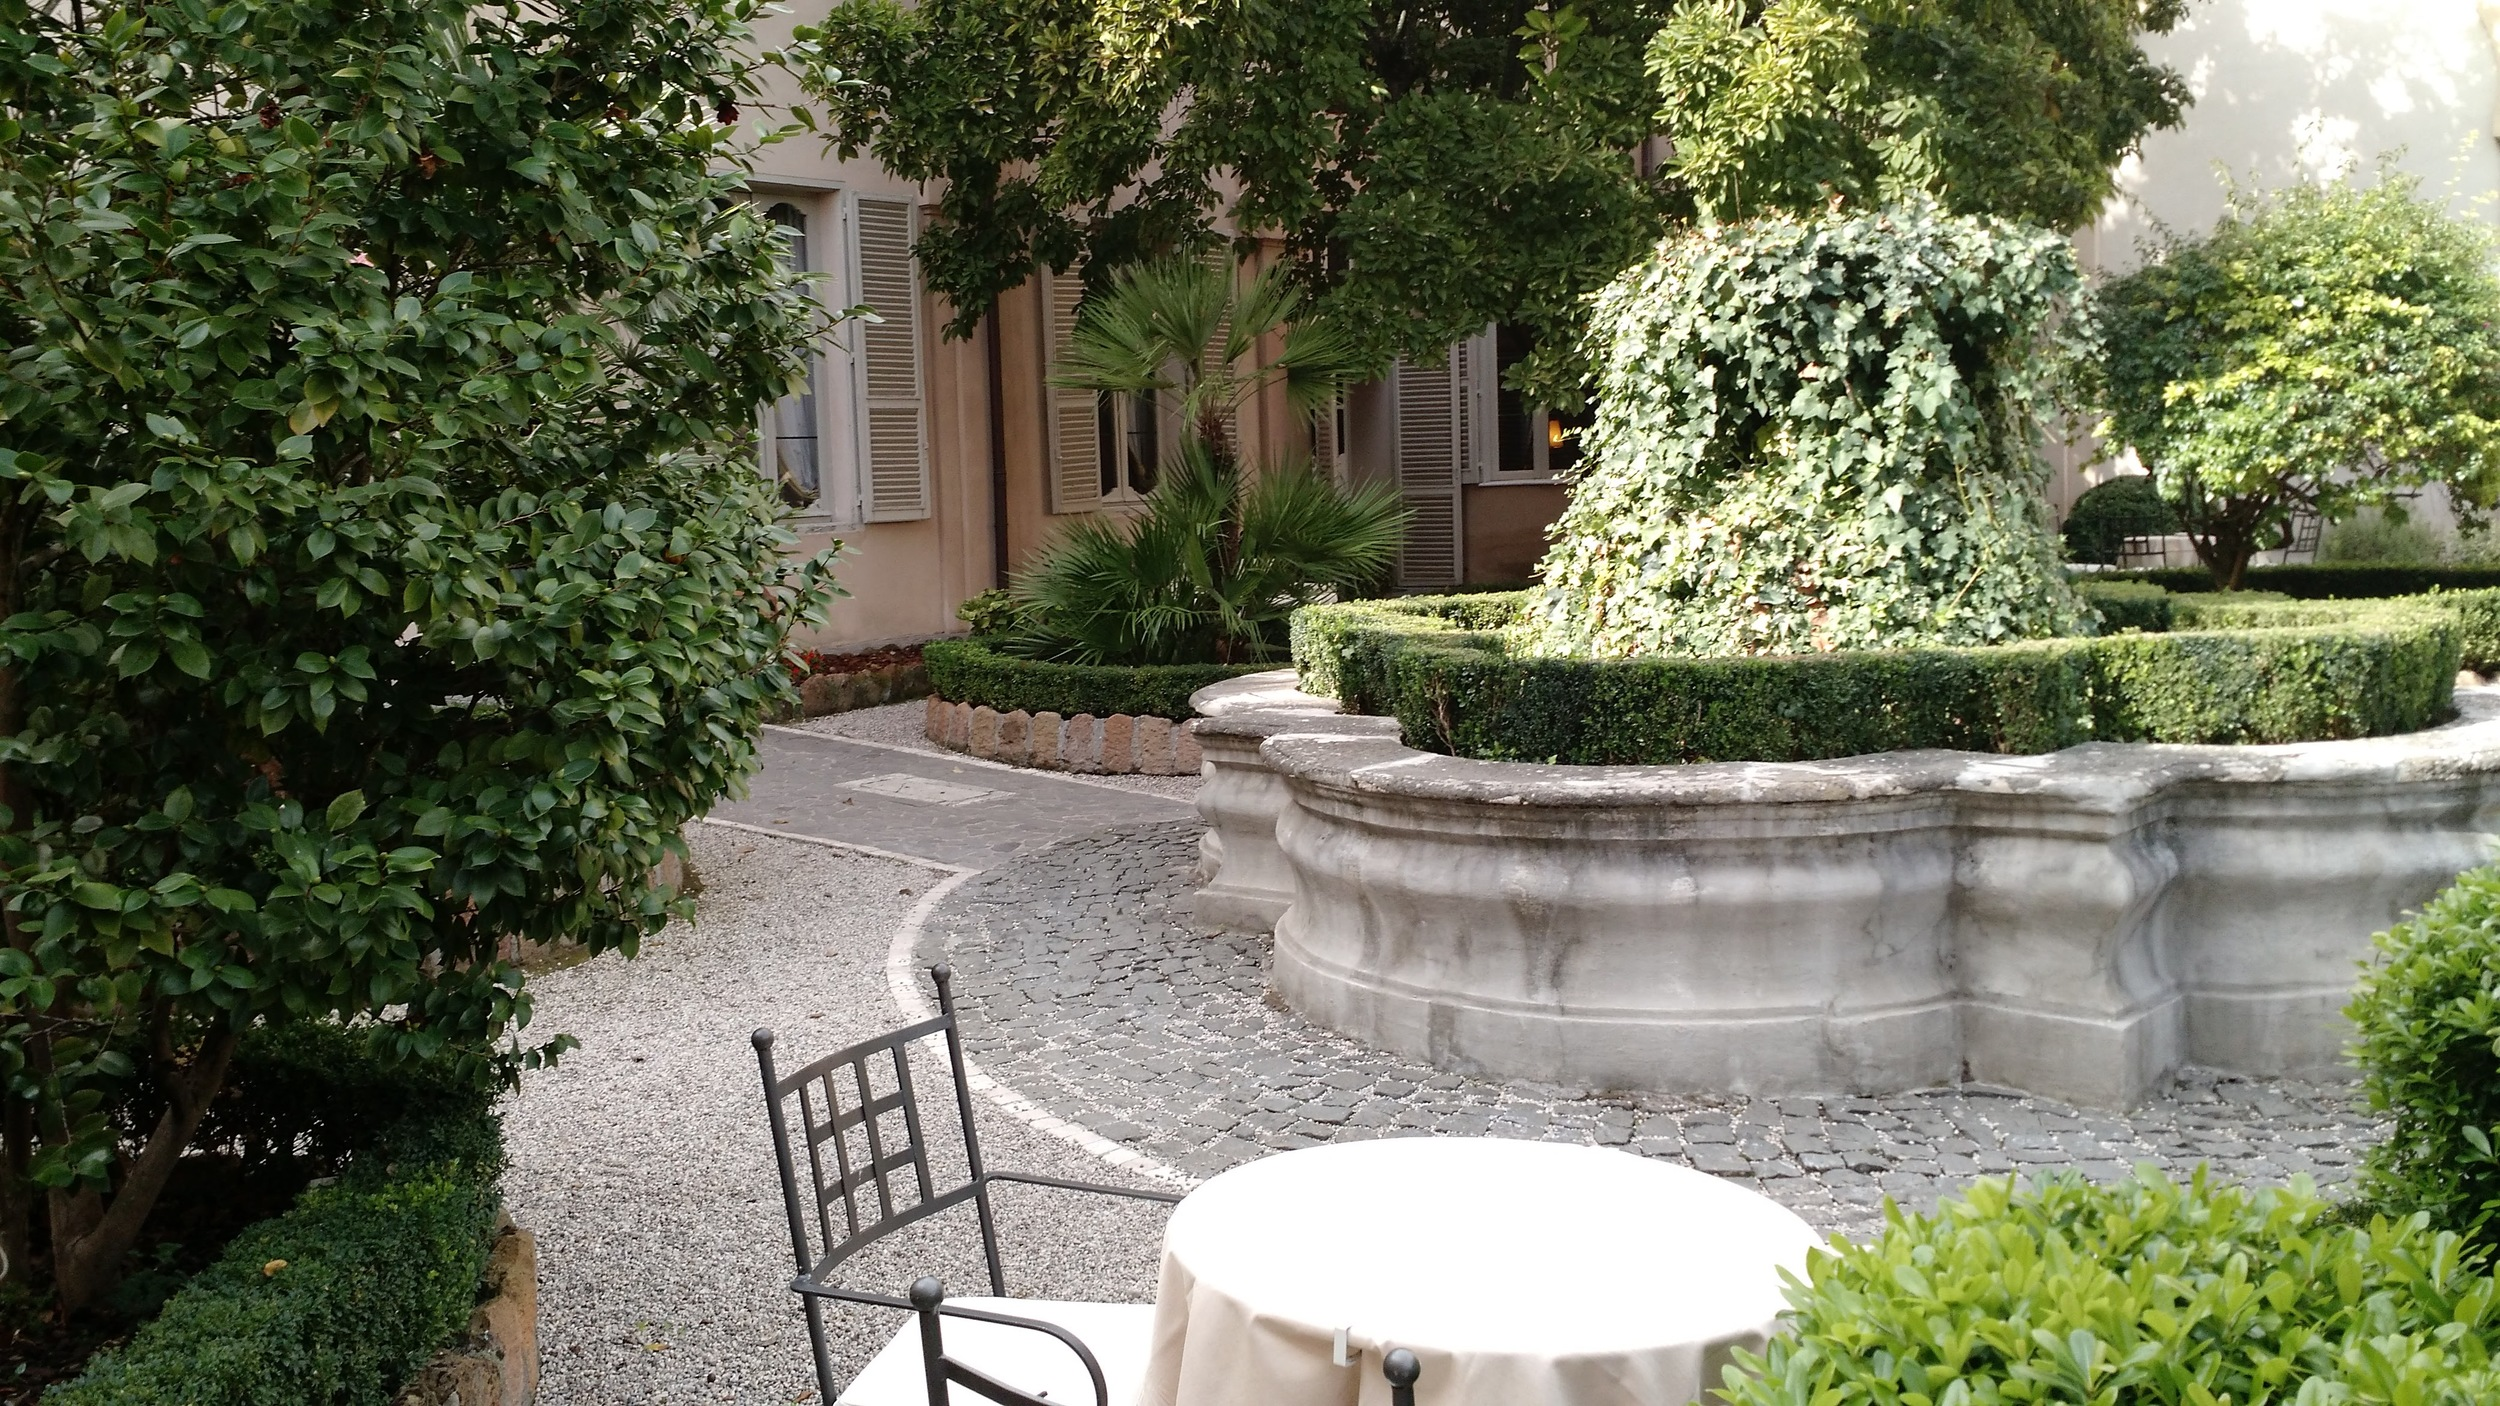 Our quiet sanctuary in the heart of Rome - our Hotel Courtyard